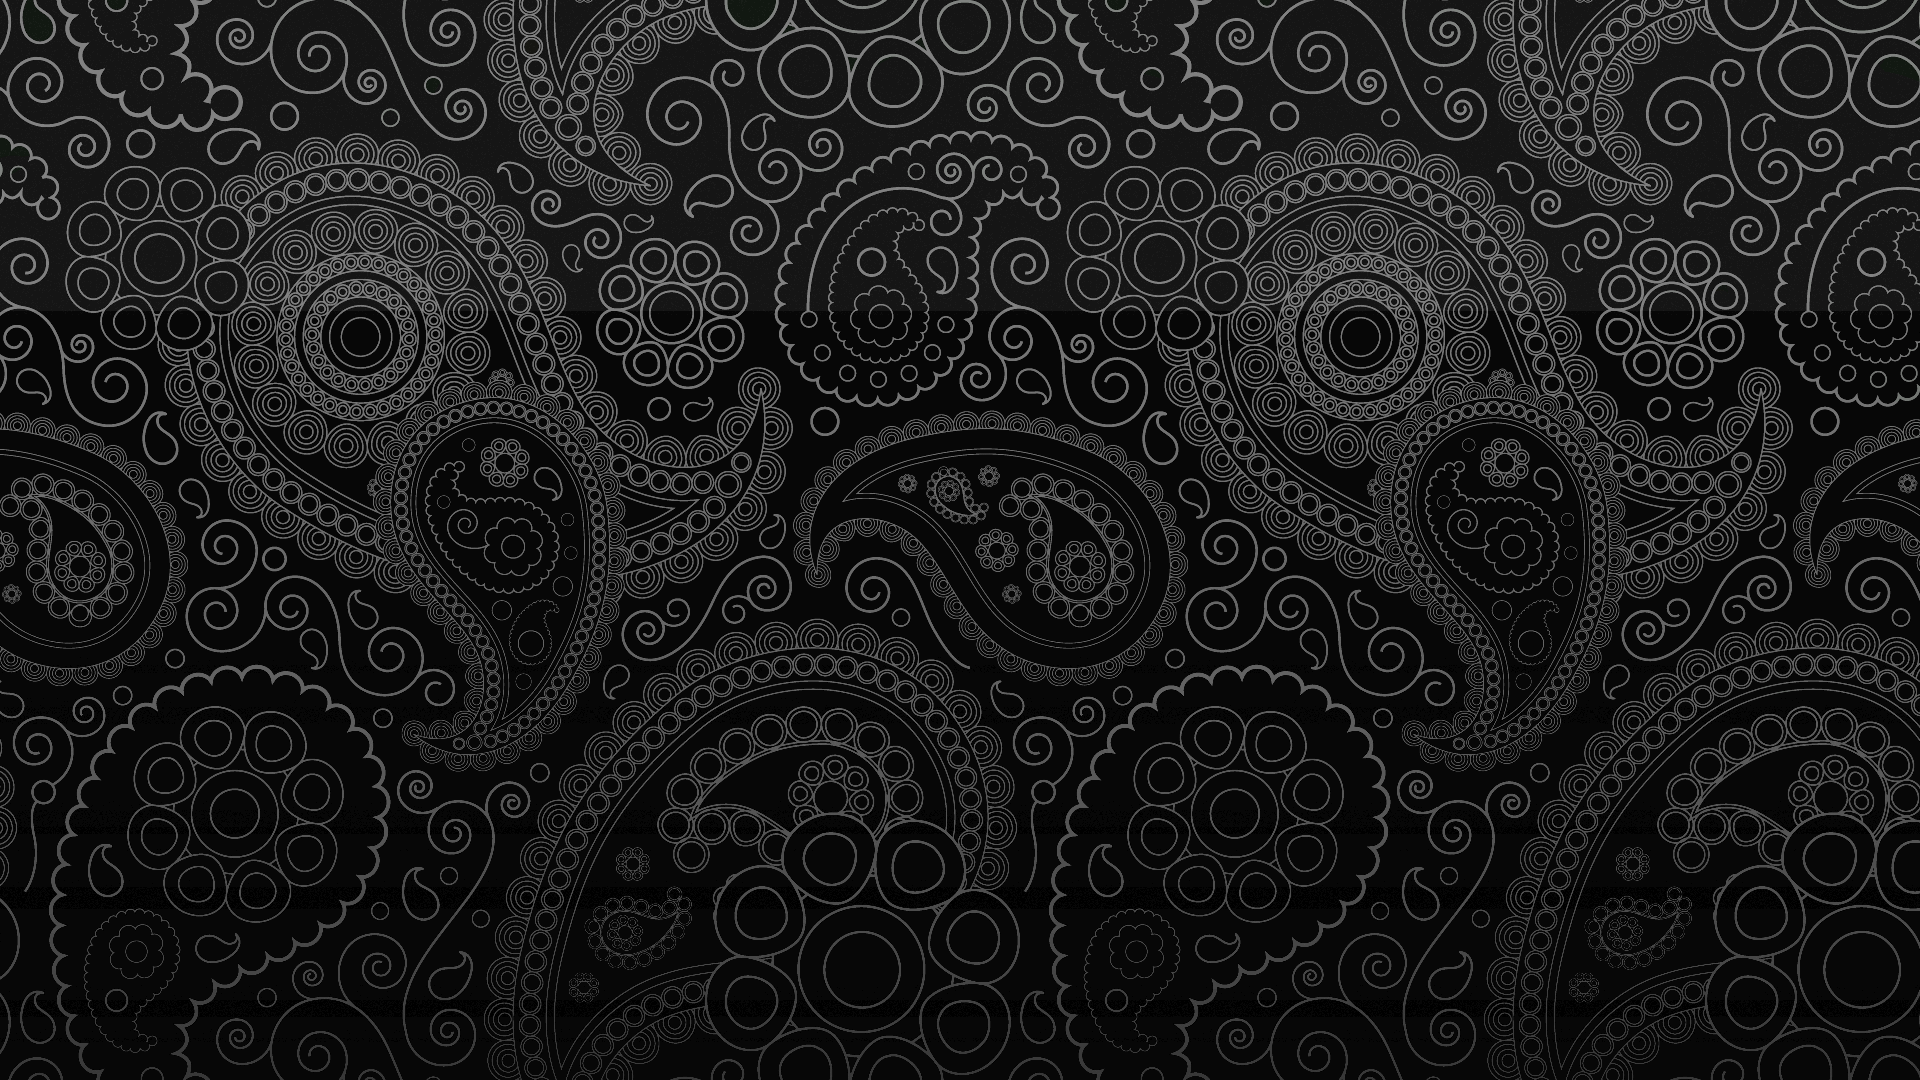 Black And White Vintage Desktop Wallpaper